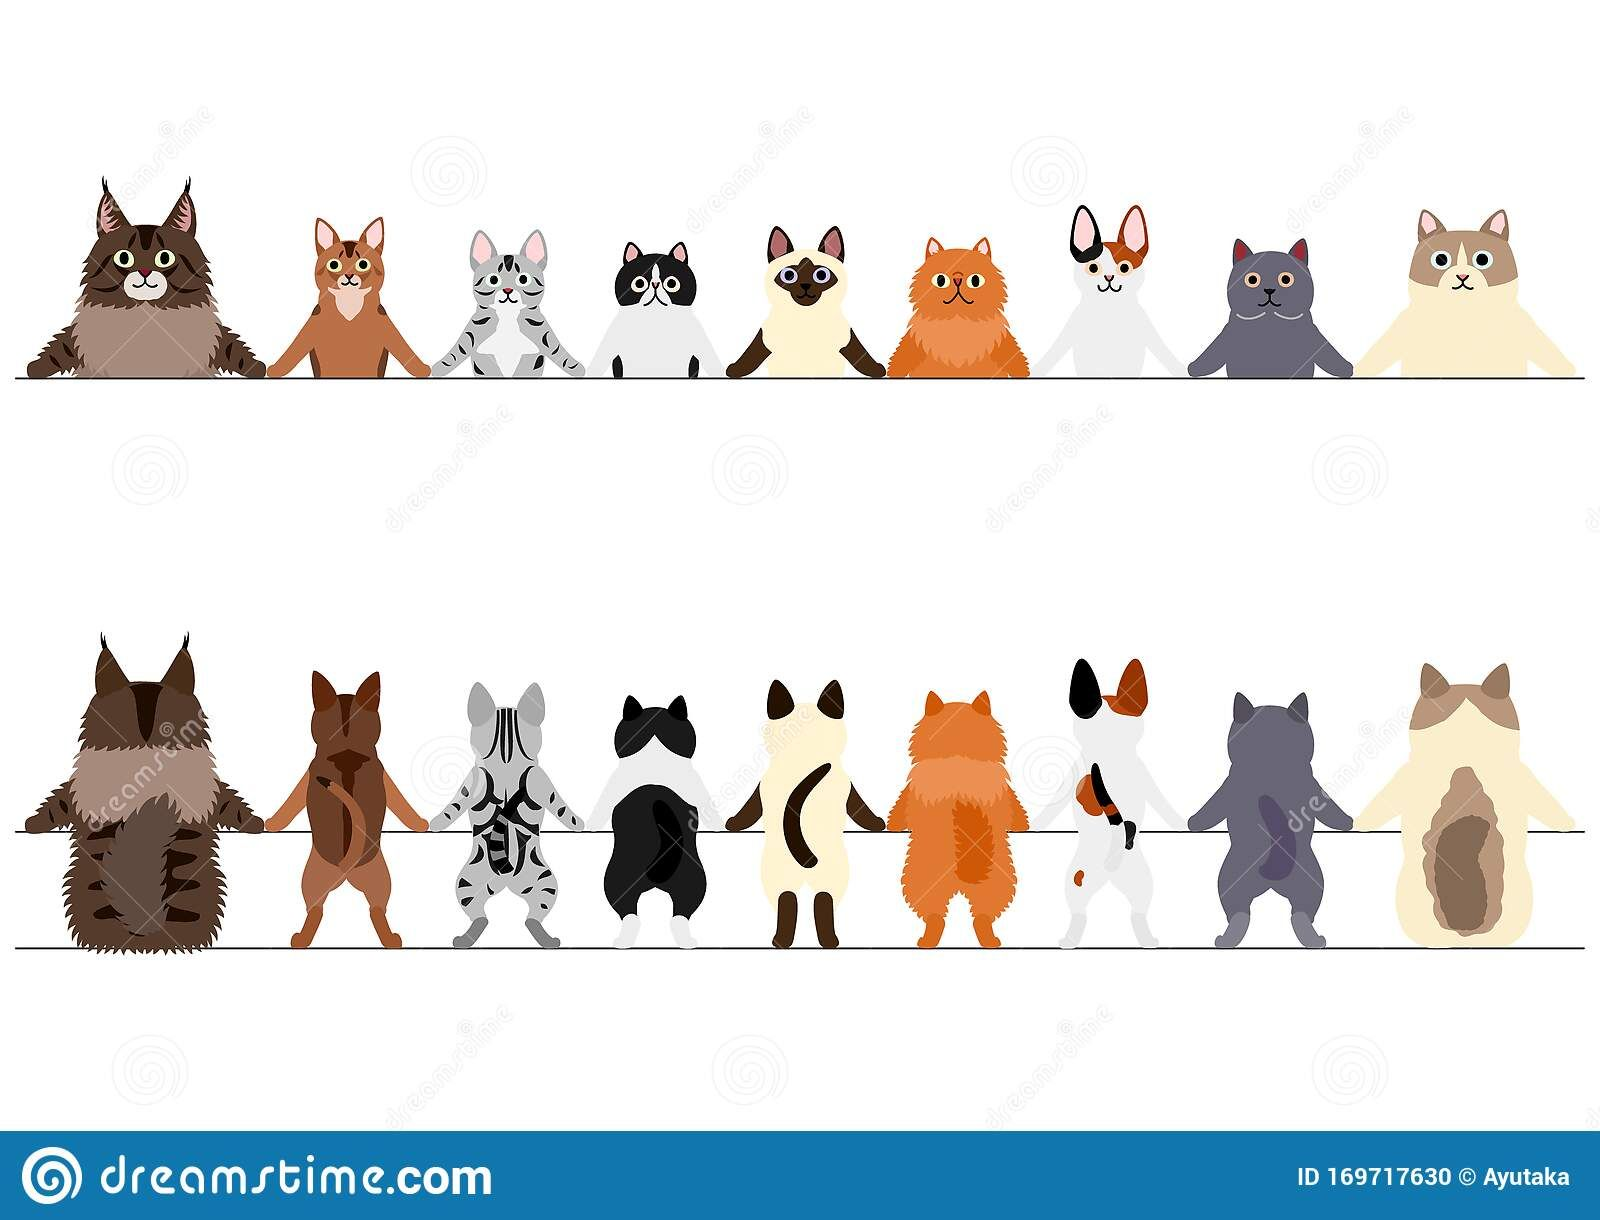 Pin By Maria Hladyschuk On Fotoshop Cat Clipart Cat Illustration Smiling Cat